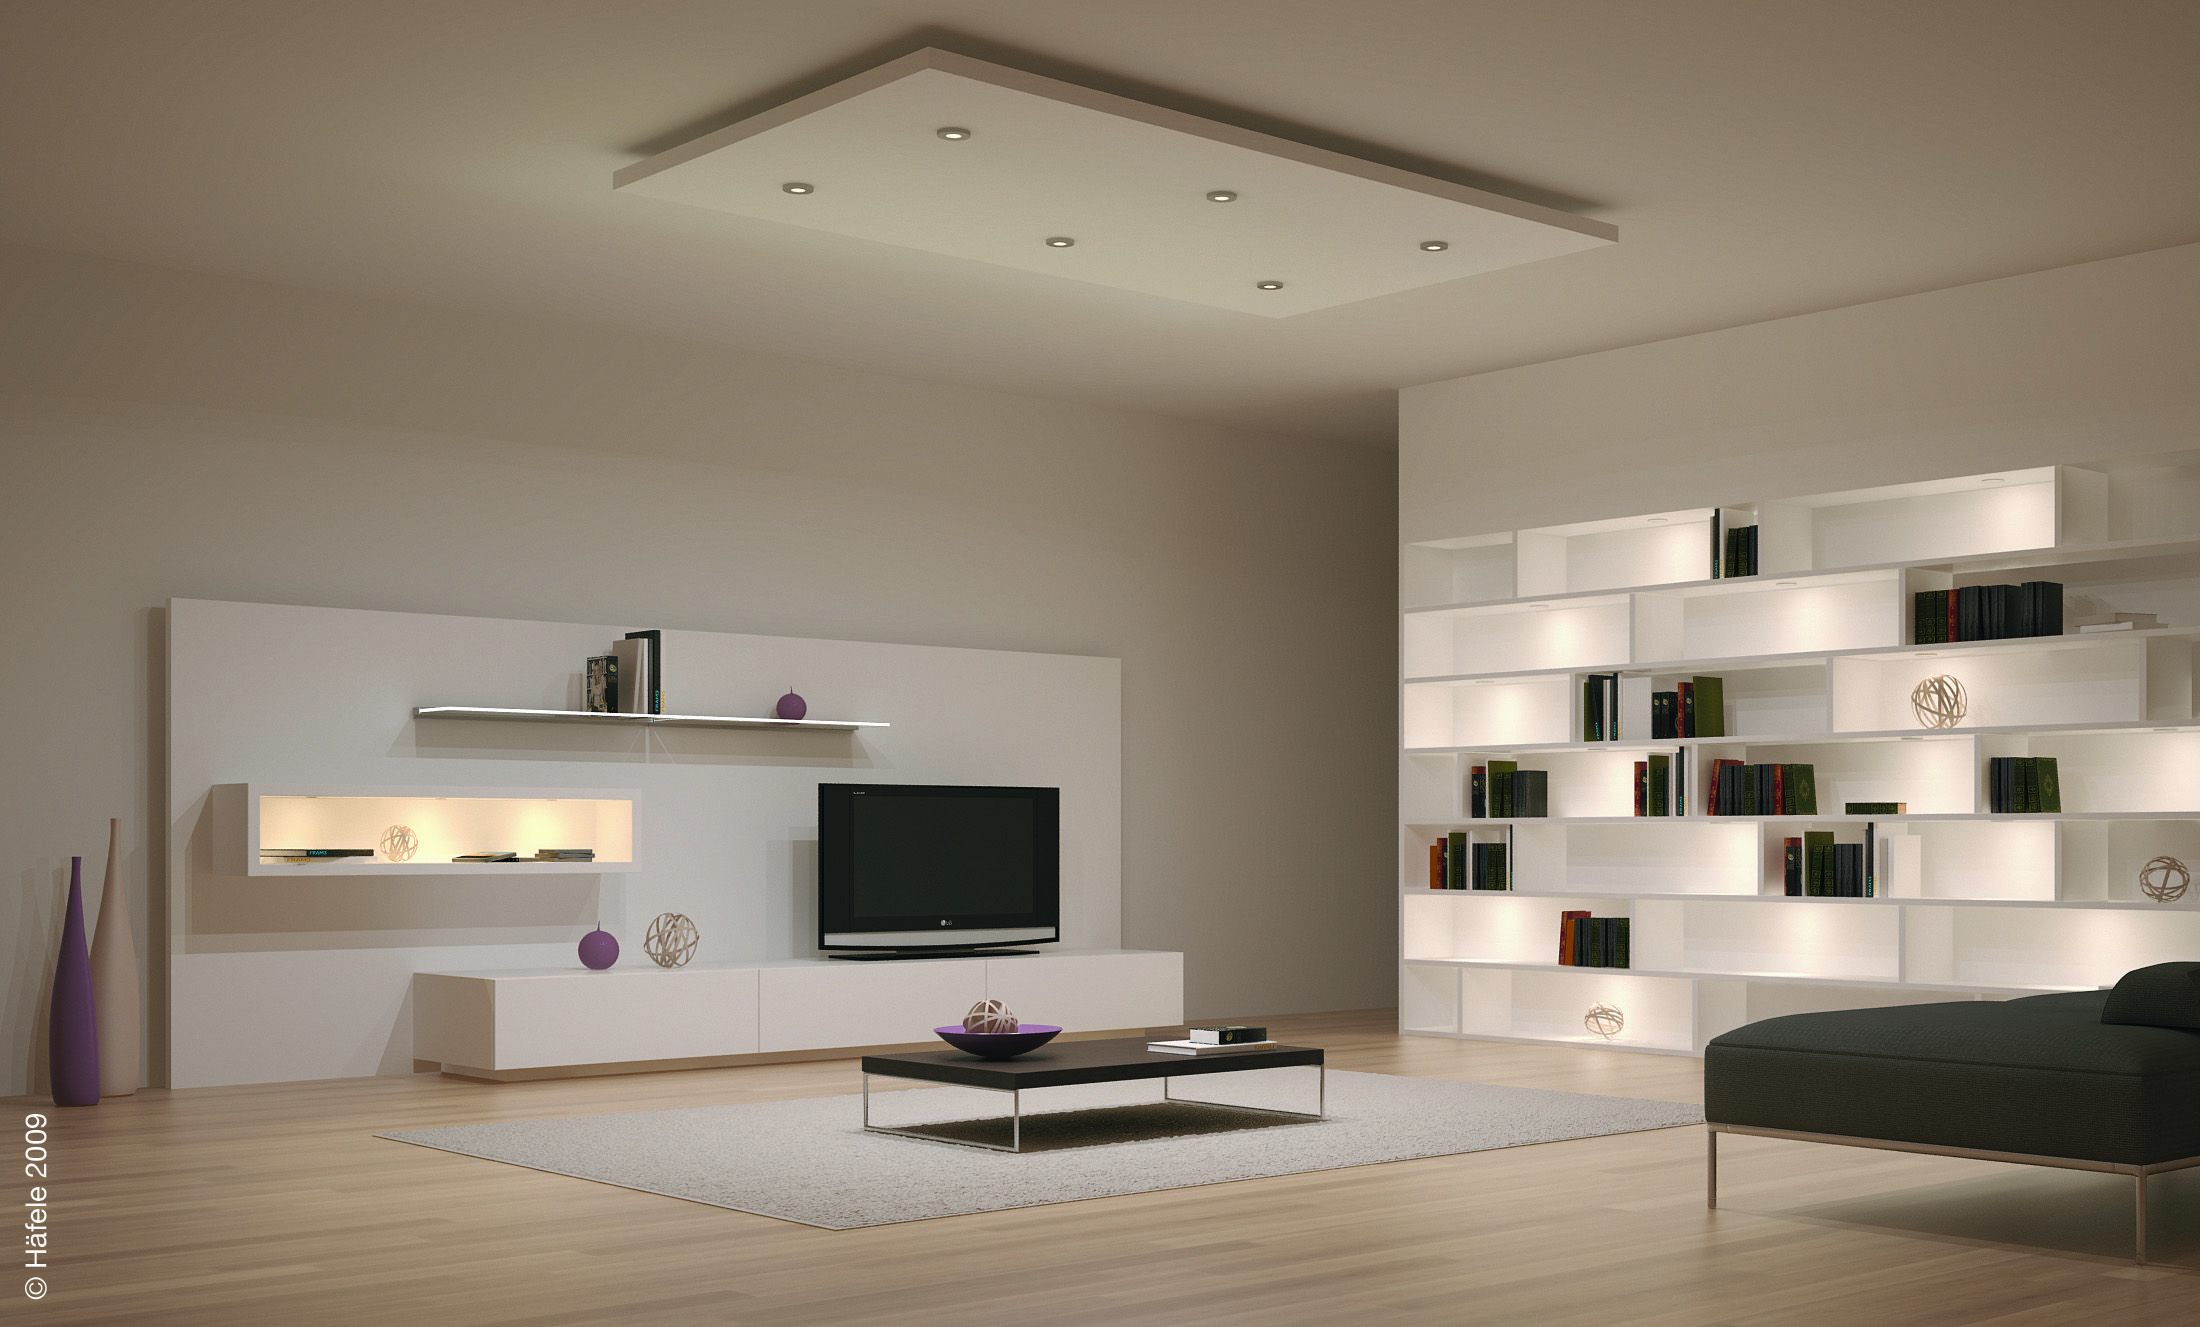 led lighting home. modern openspace living room design lighting system ideas with cool led ceiling recessed and wall shelves concealed lights creative eyecatching home led